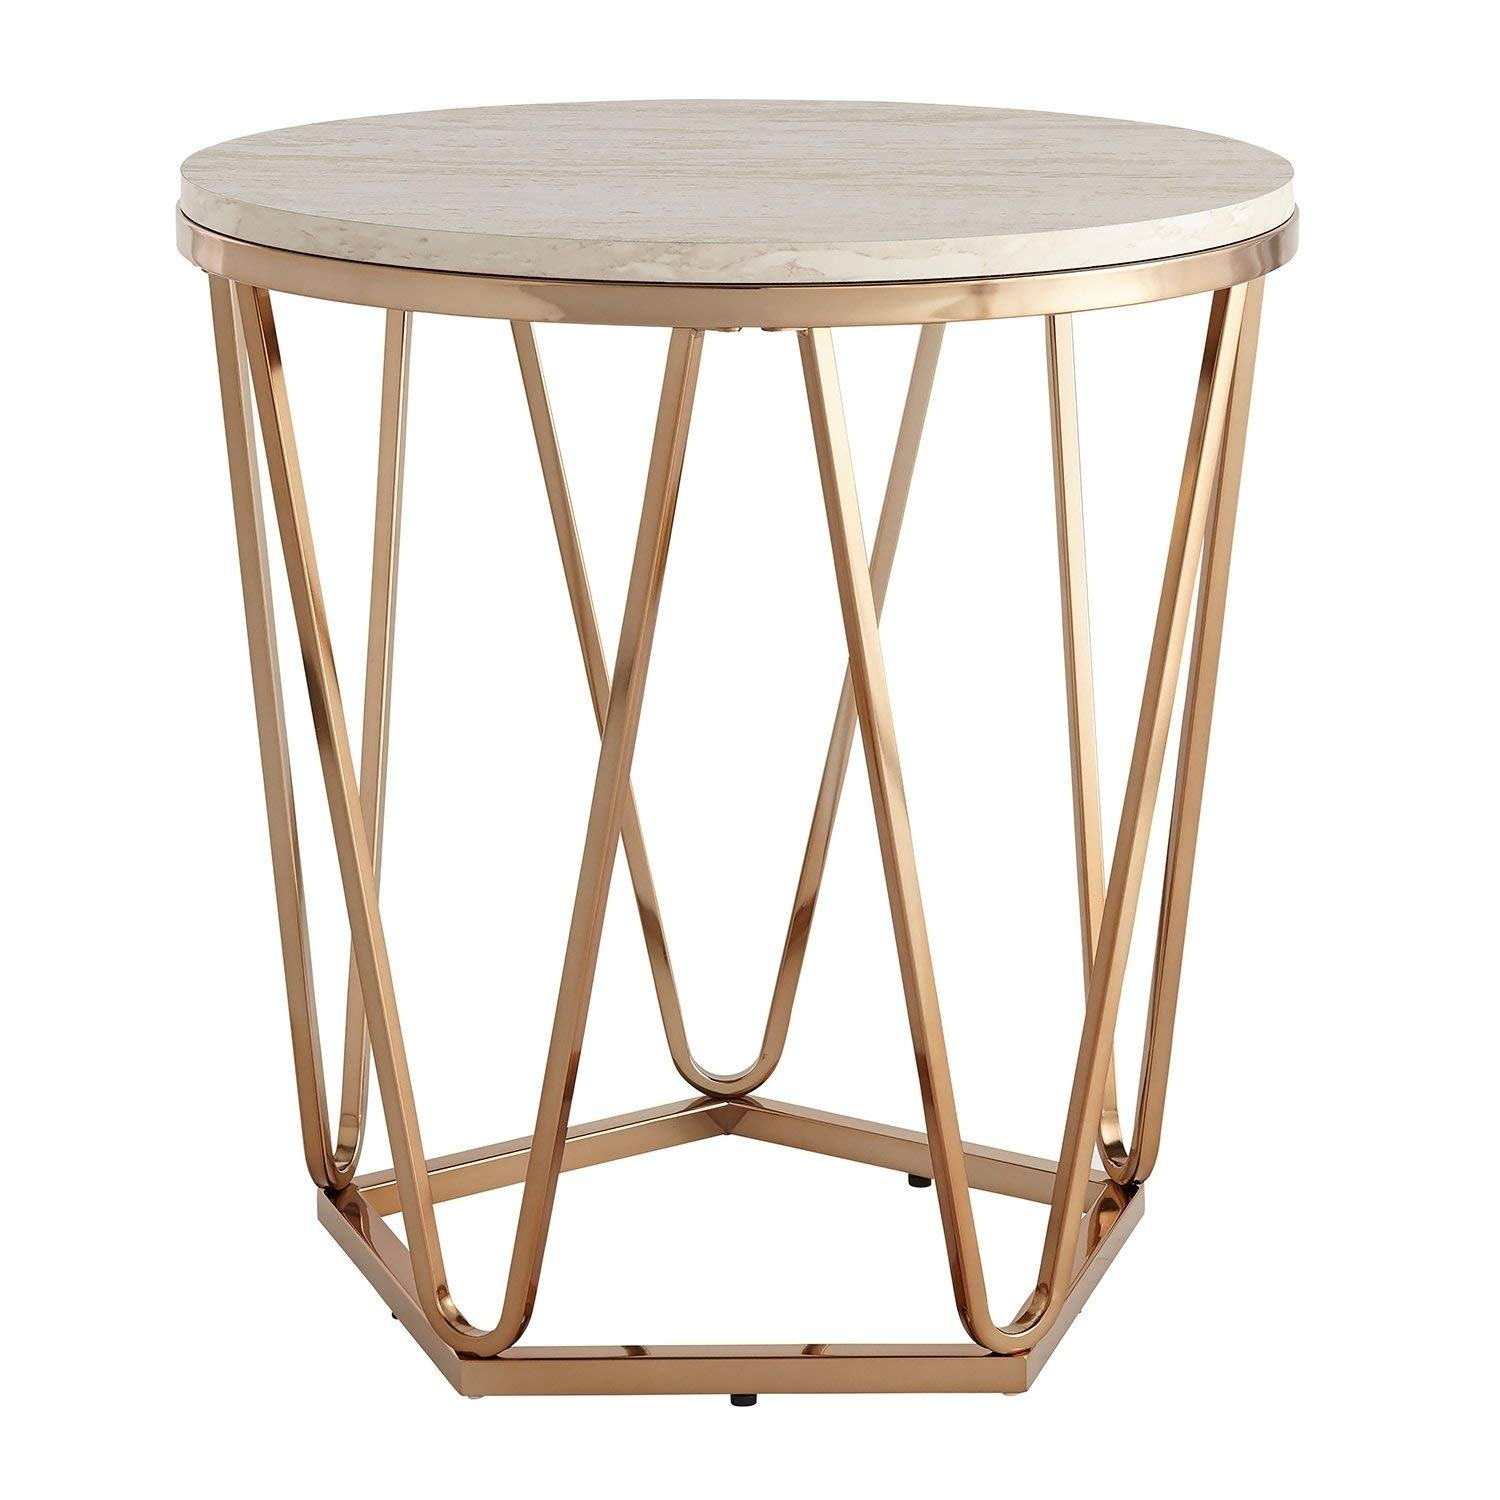 modern gold round faux stone table top end coffee wood accent with geometric metal base includes modhaus living pen kitchen dining solid cherry tables small desk hutch target